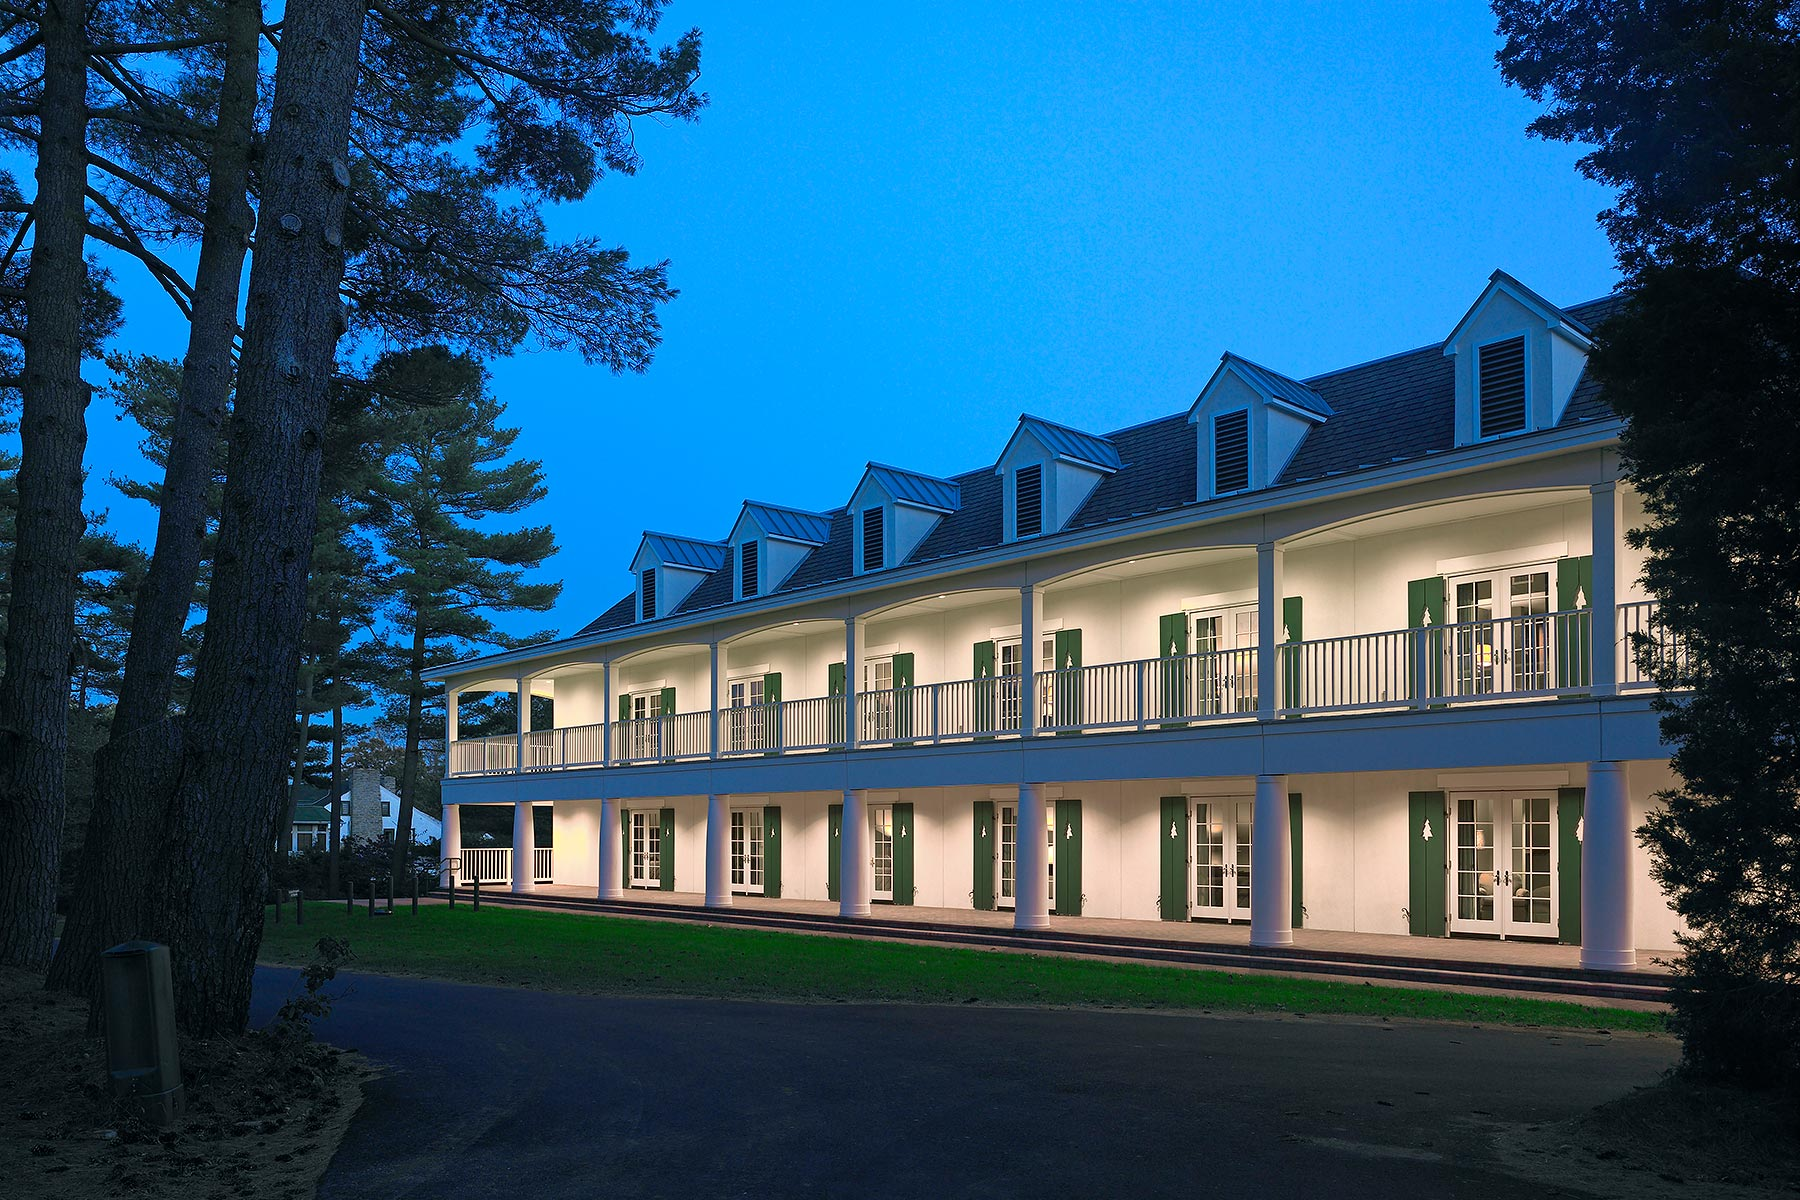 Pine Valley Golf Club Blackney Hayes Architects Pine Valley, NJ